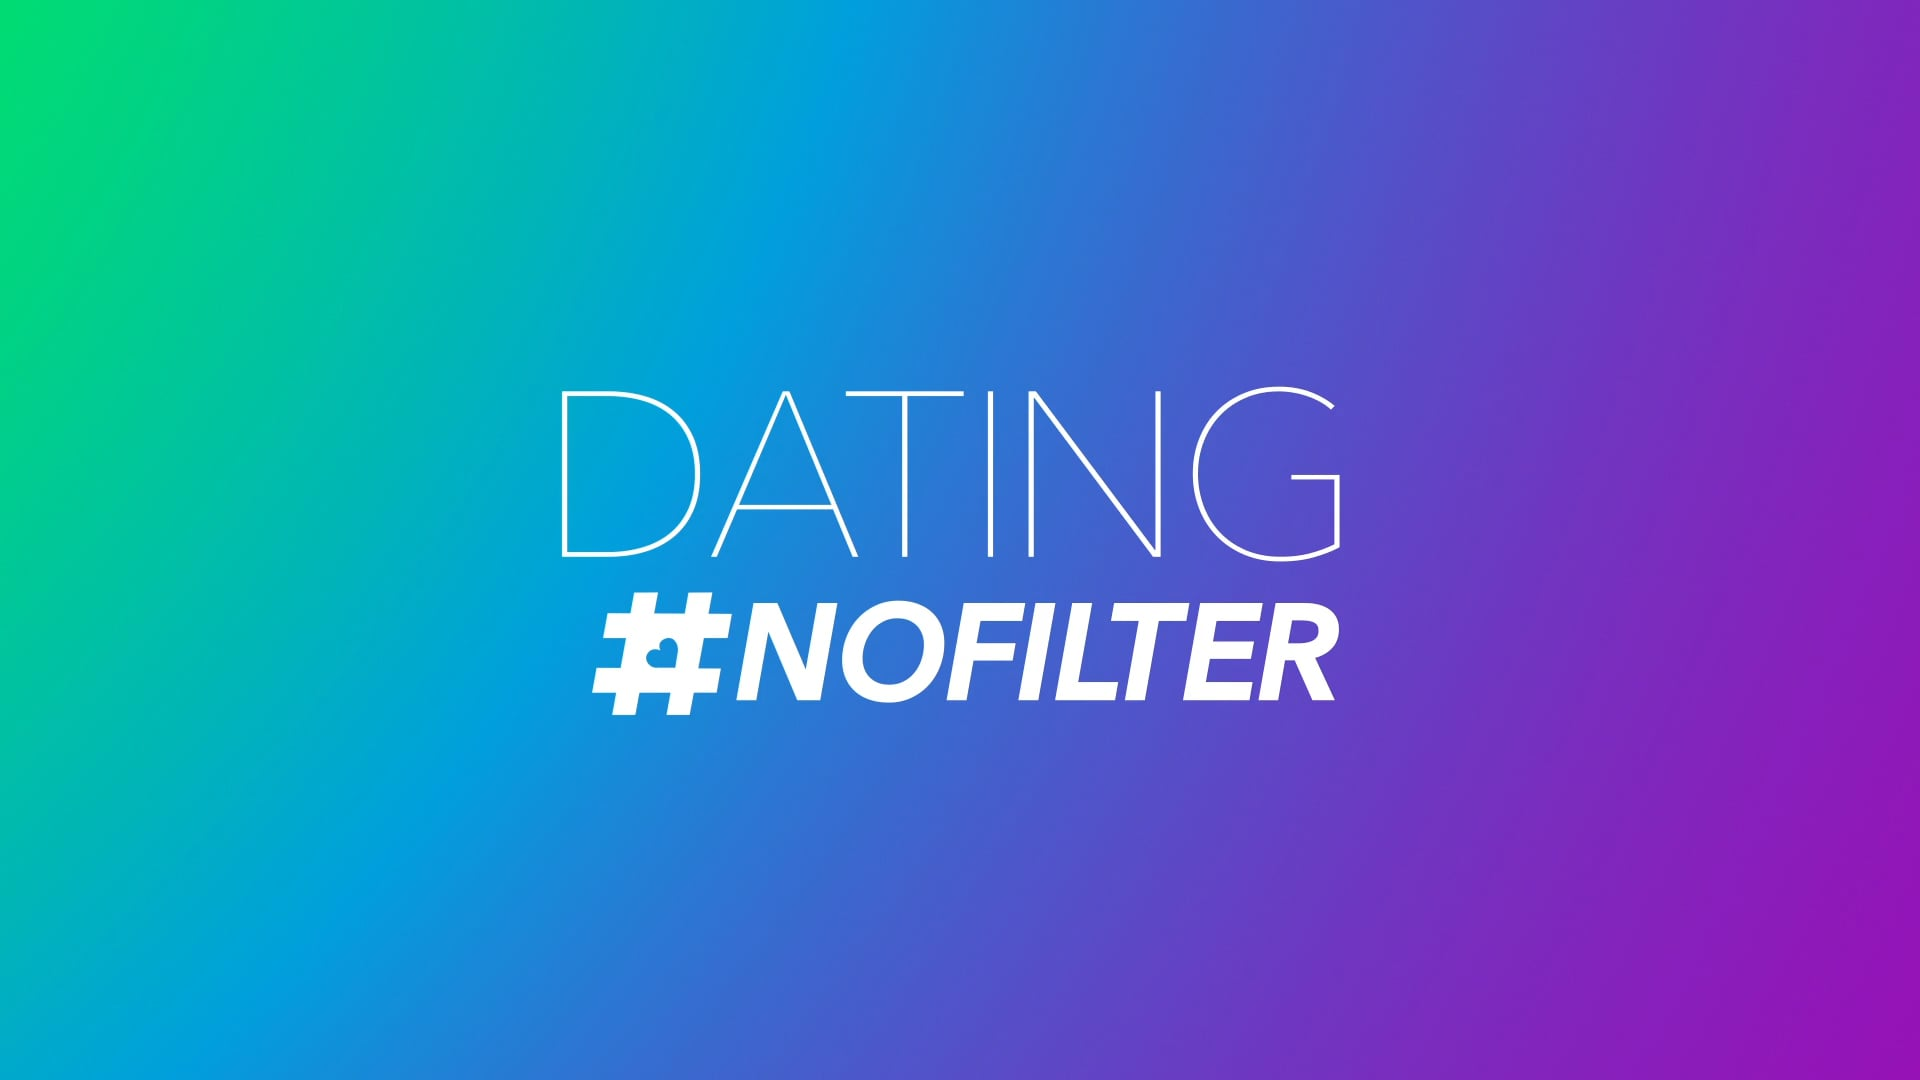 E! Dating #NoFilter Show Graphics Package